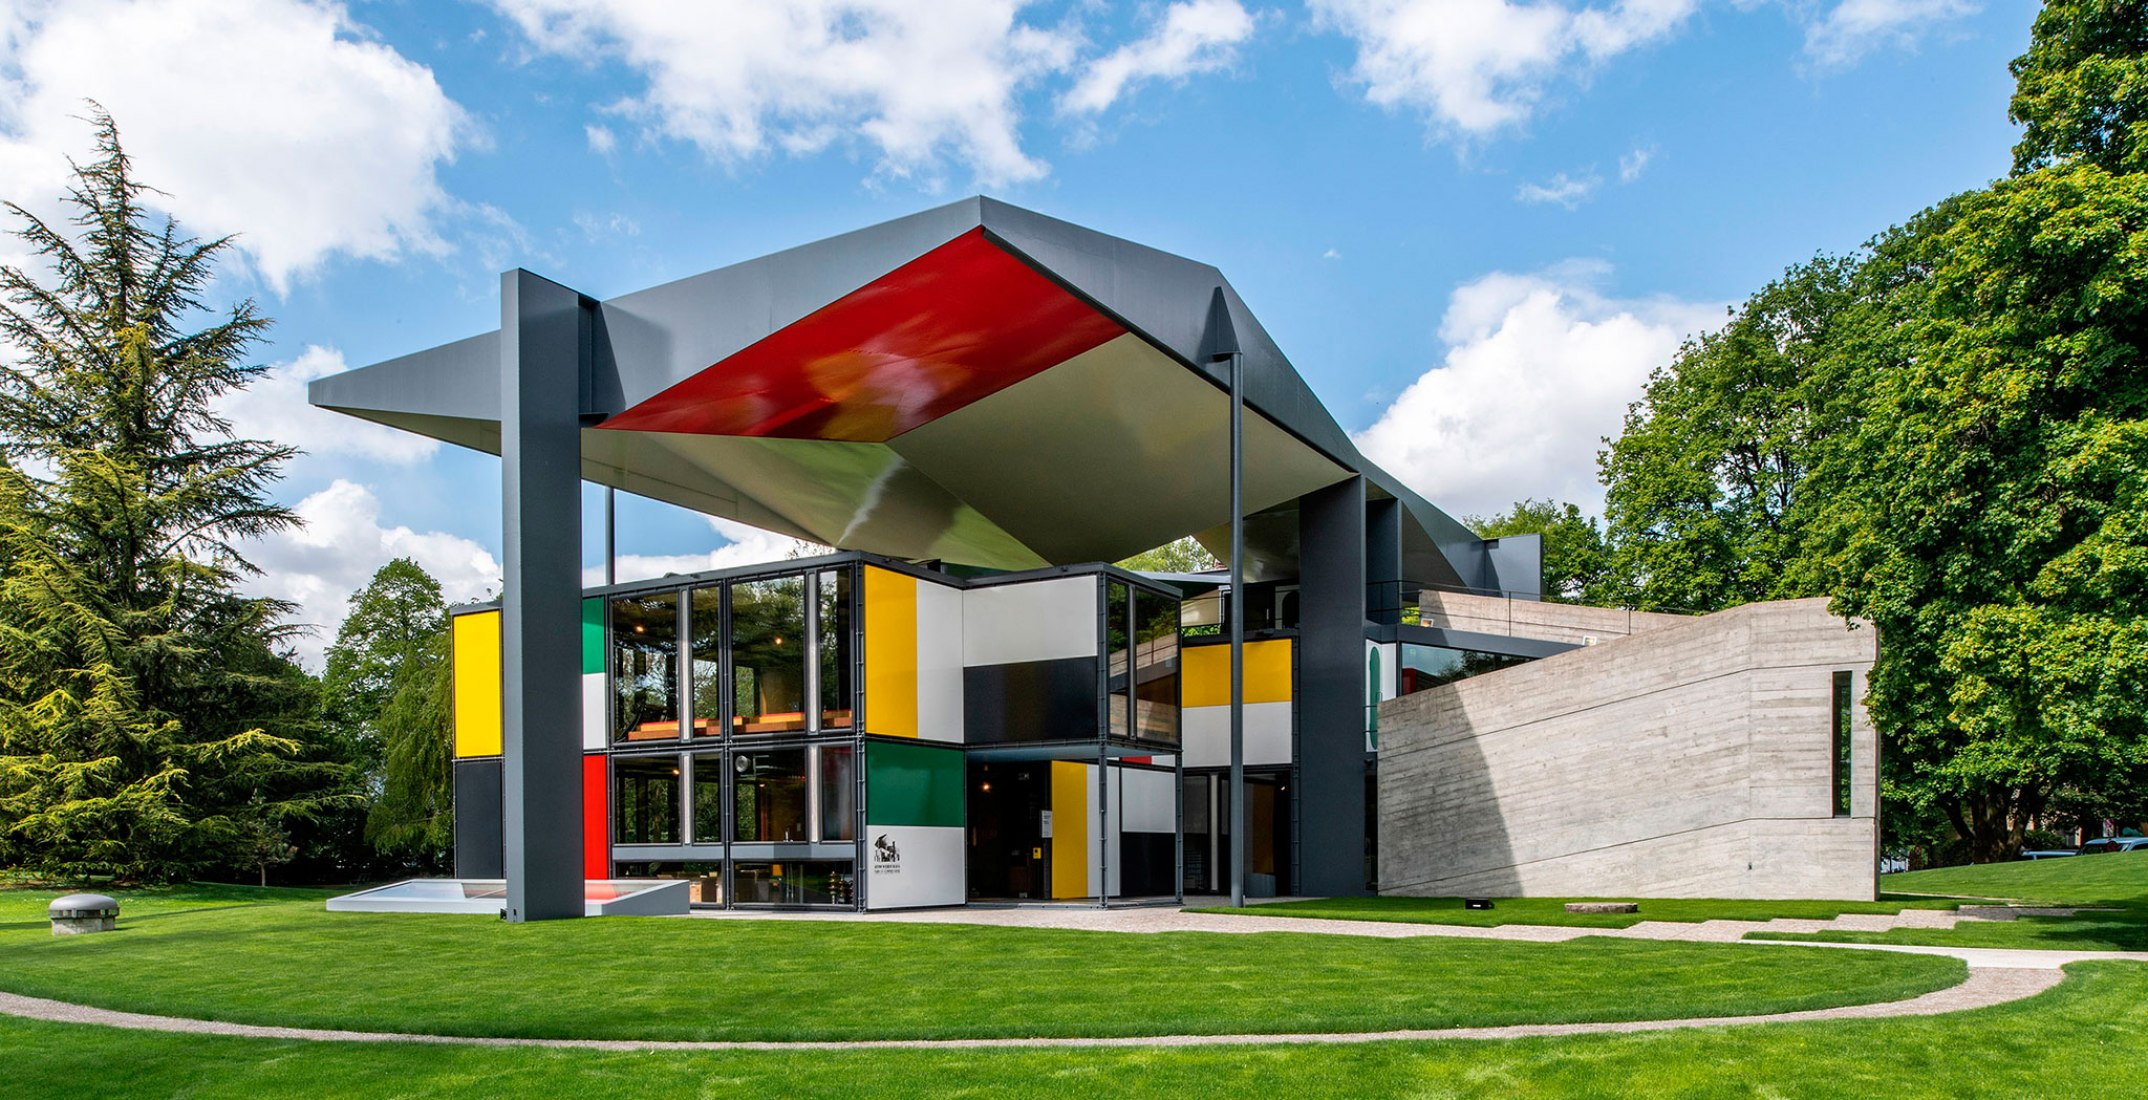 Outside view. Zurich Pavillon Le Corbusier, reopened. Image courtesy of ZHdK.